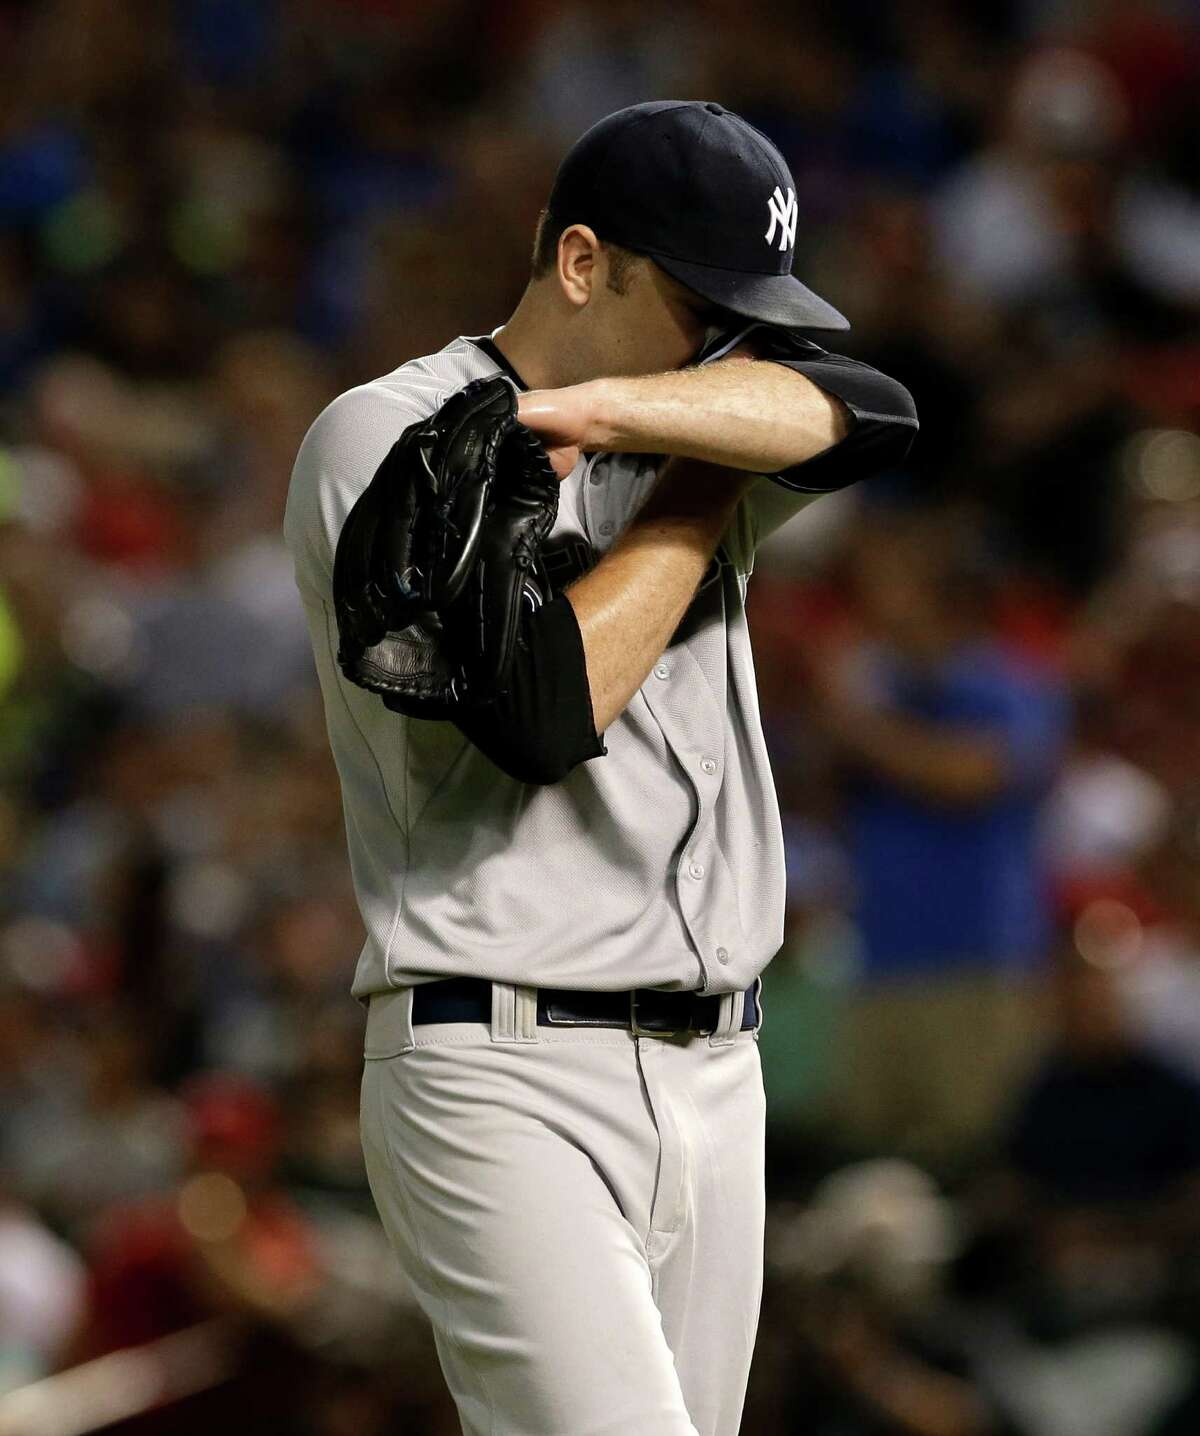 New York Yankees' David Phelps wipes his face as he walks back on the mound after giving up a two-run single to Texas Rangers' J.P. Arencibia in the fifth inning of a baseball game, Monday, July 28, 2014, in Arlington, Texas. (AP Photo/Tony Gutierrez) ORG XMIT: ARL121